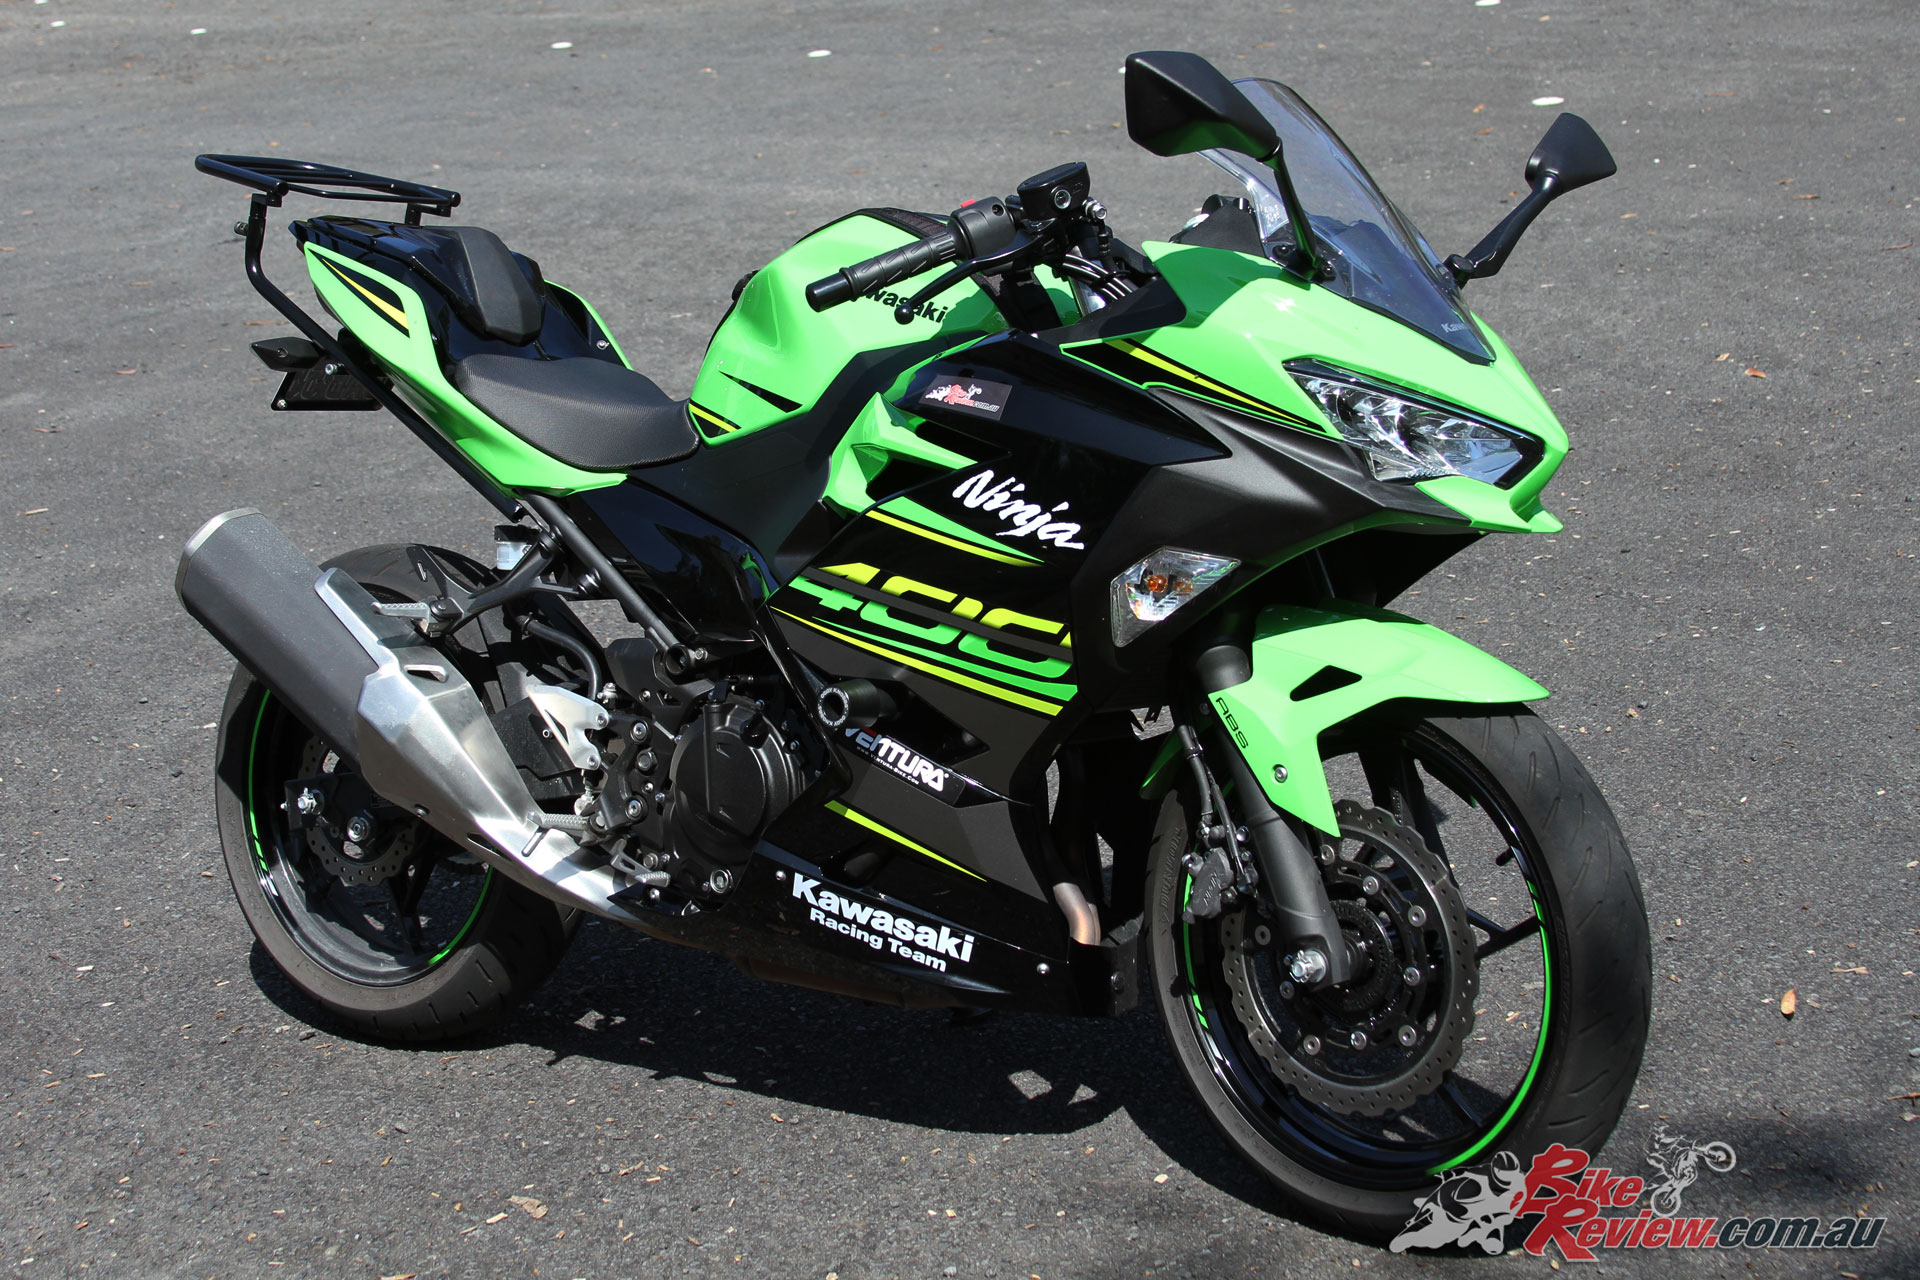 Out Ninja 400 with the genuine Kawasaki seat cowl fitted